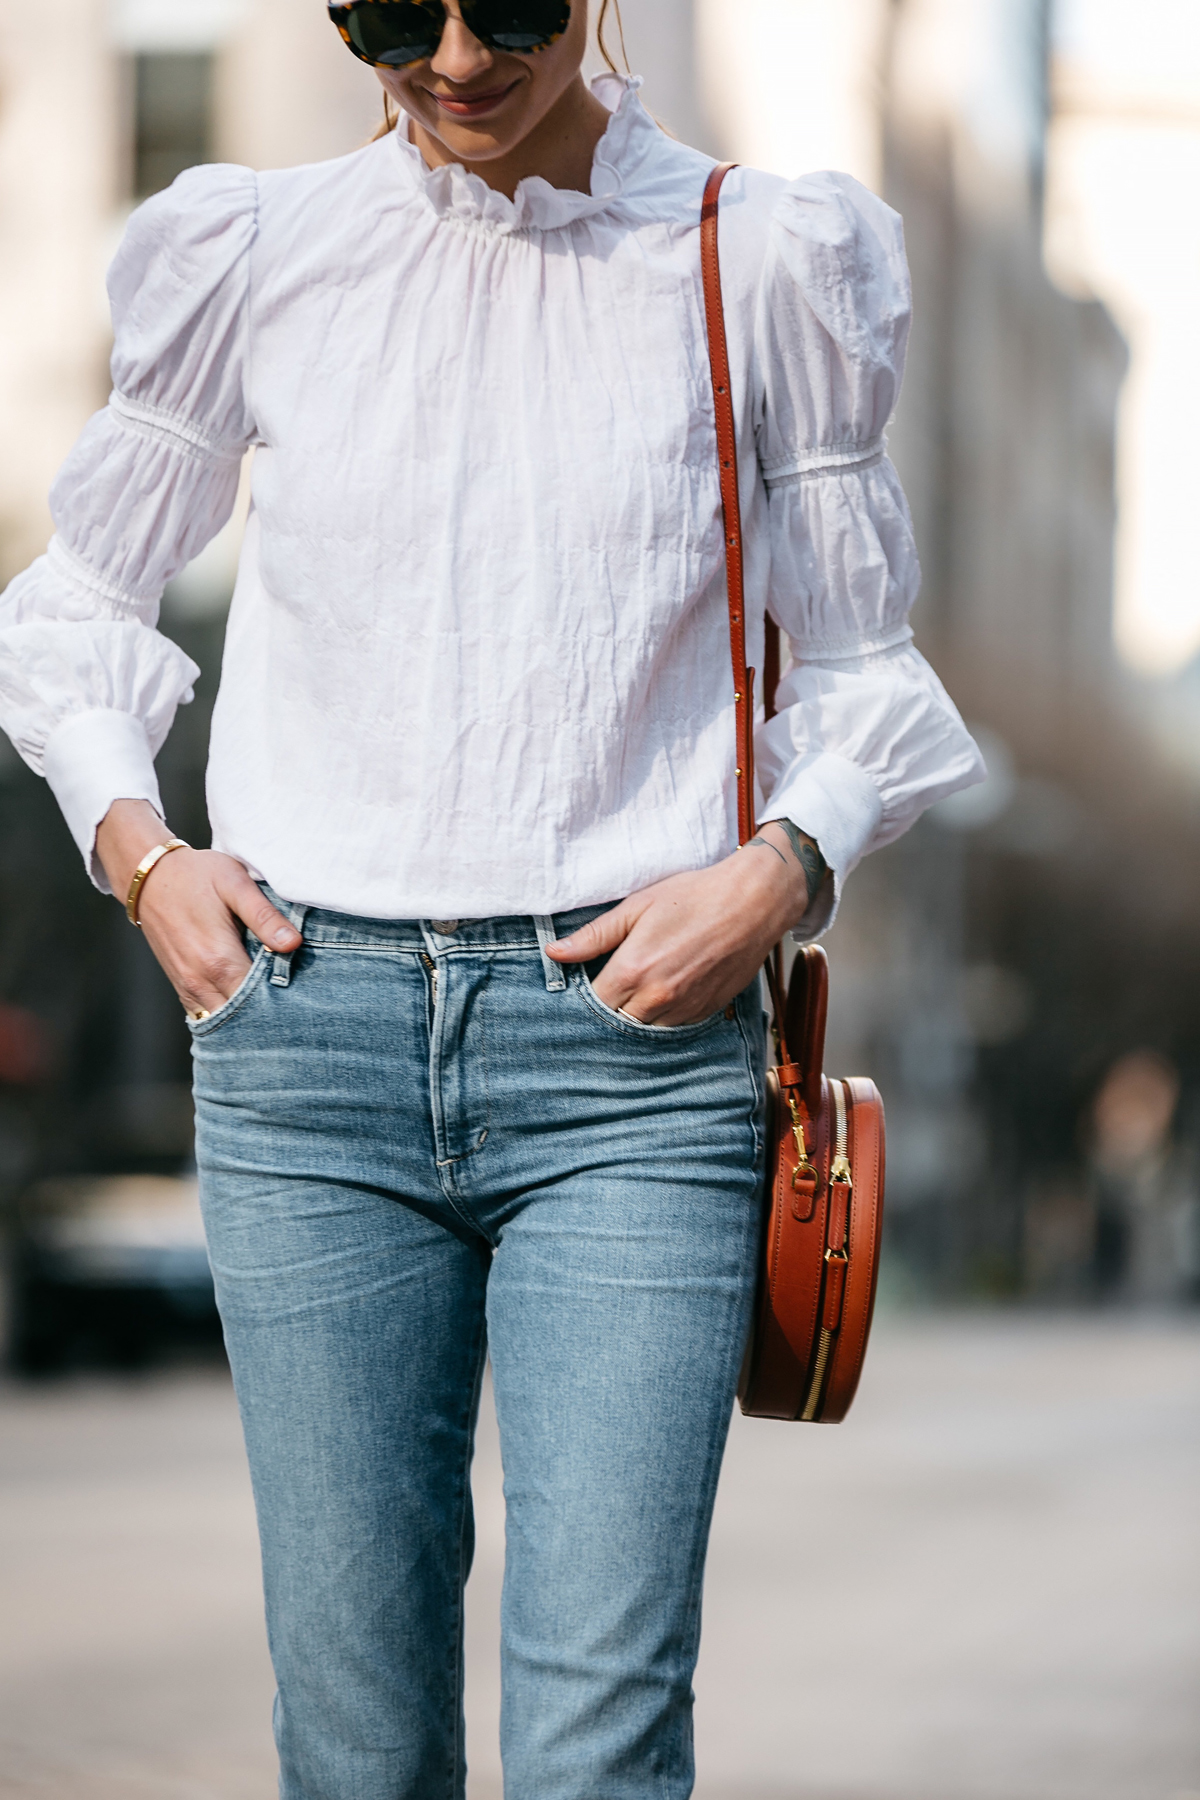 Woman Wearing Rebecca Taylor White Ruffle Top Denim Jeans Mansur Gavriel Circle Bag Fashion Jackson Dallas Blogger Fashion Blogger Street Style